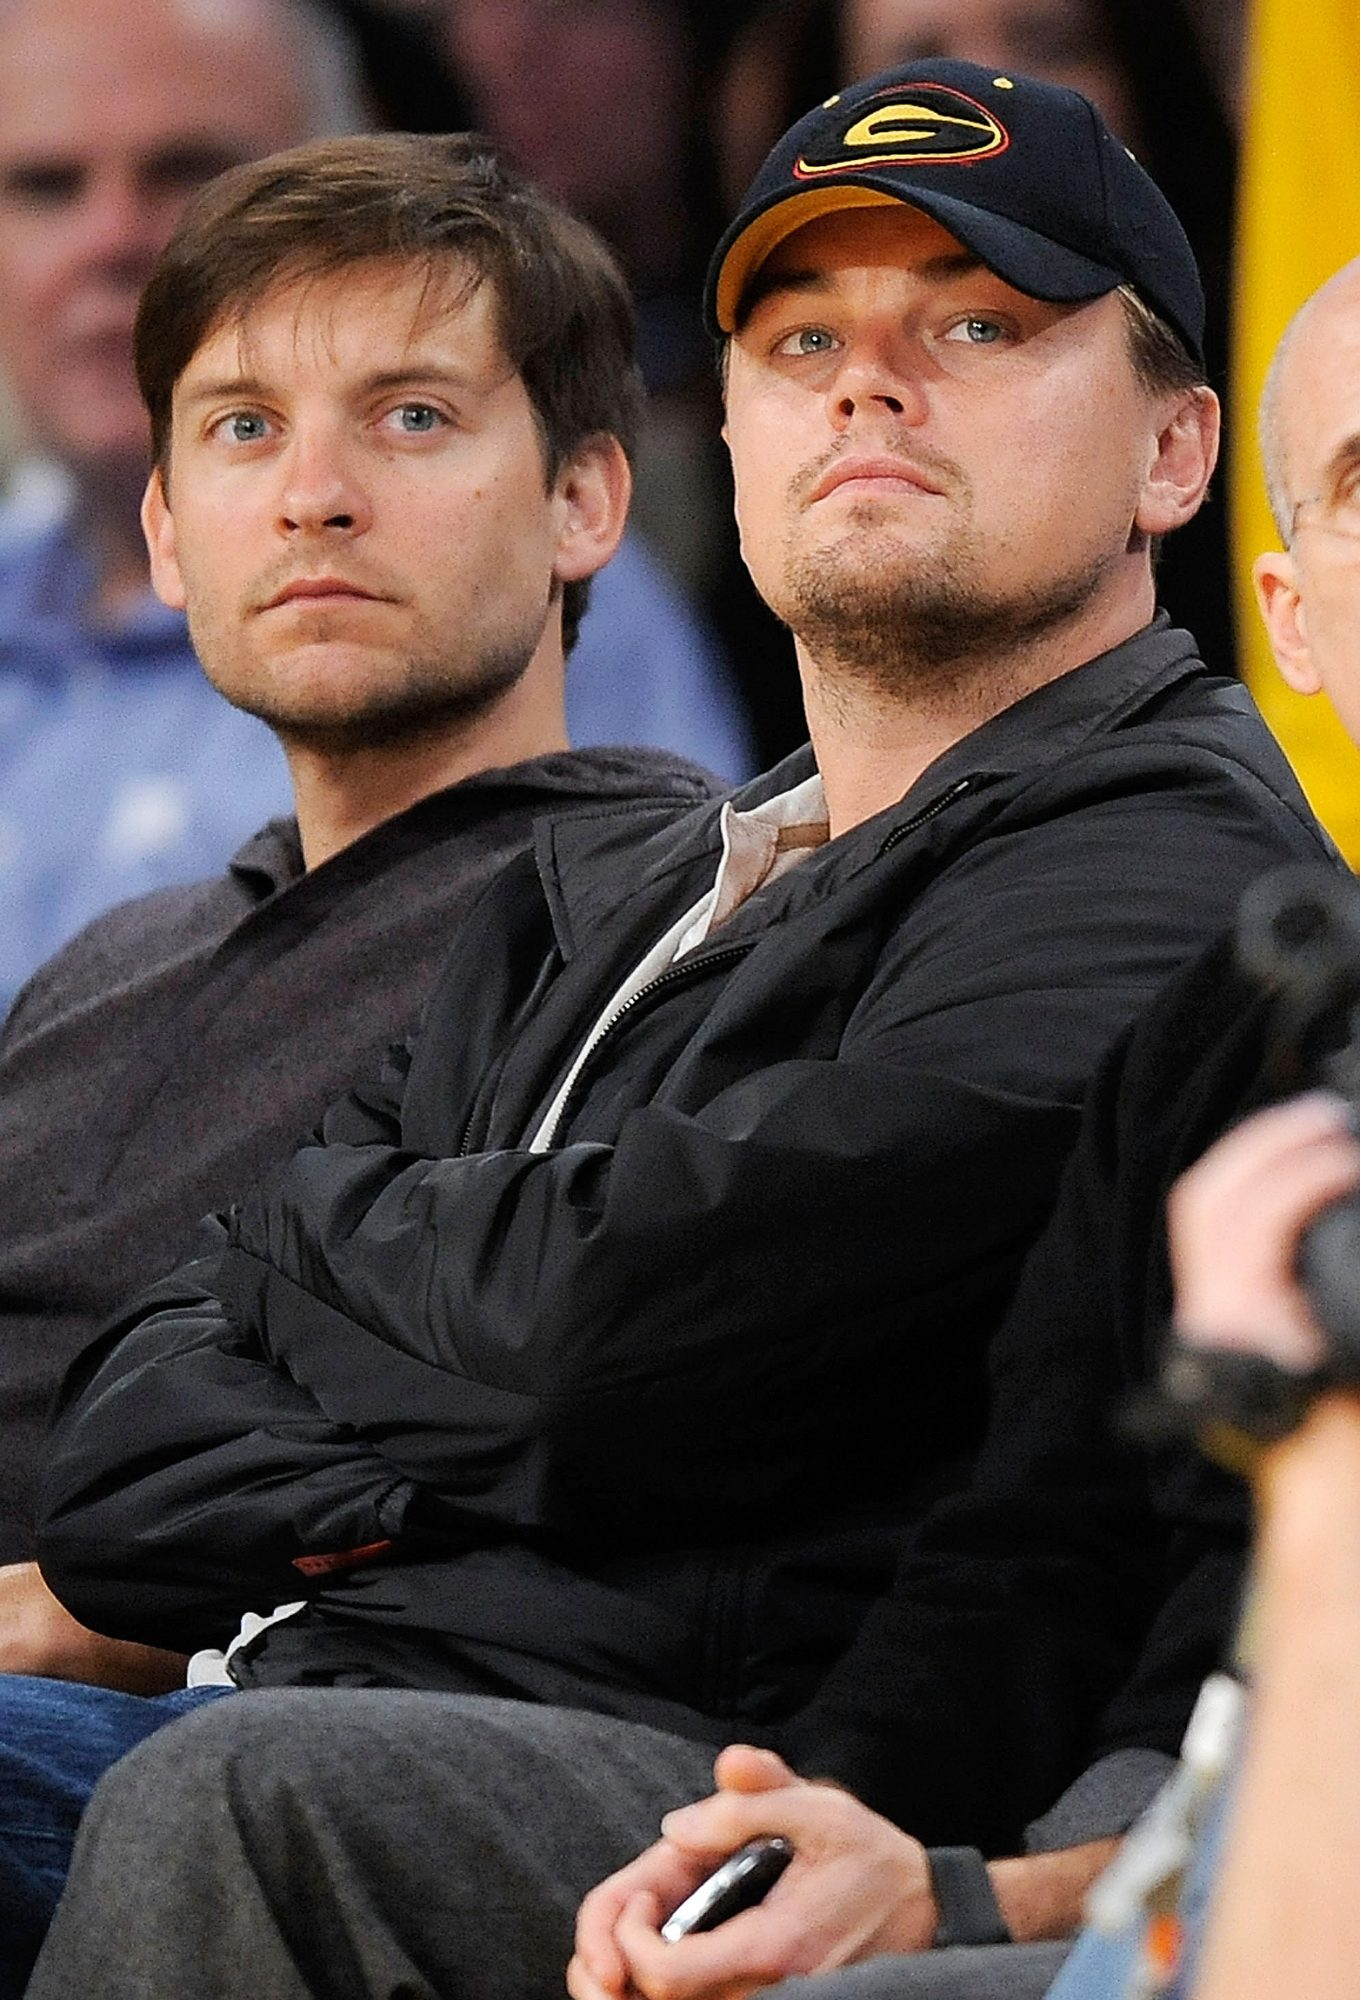 <p>And best buds with Tobey Maguire since the '80s.</p>